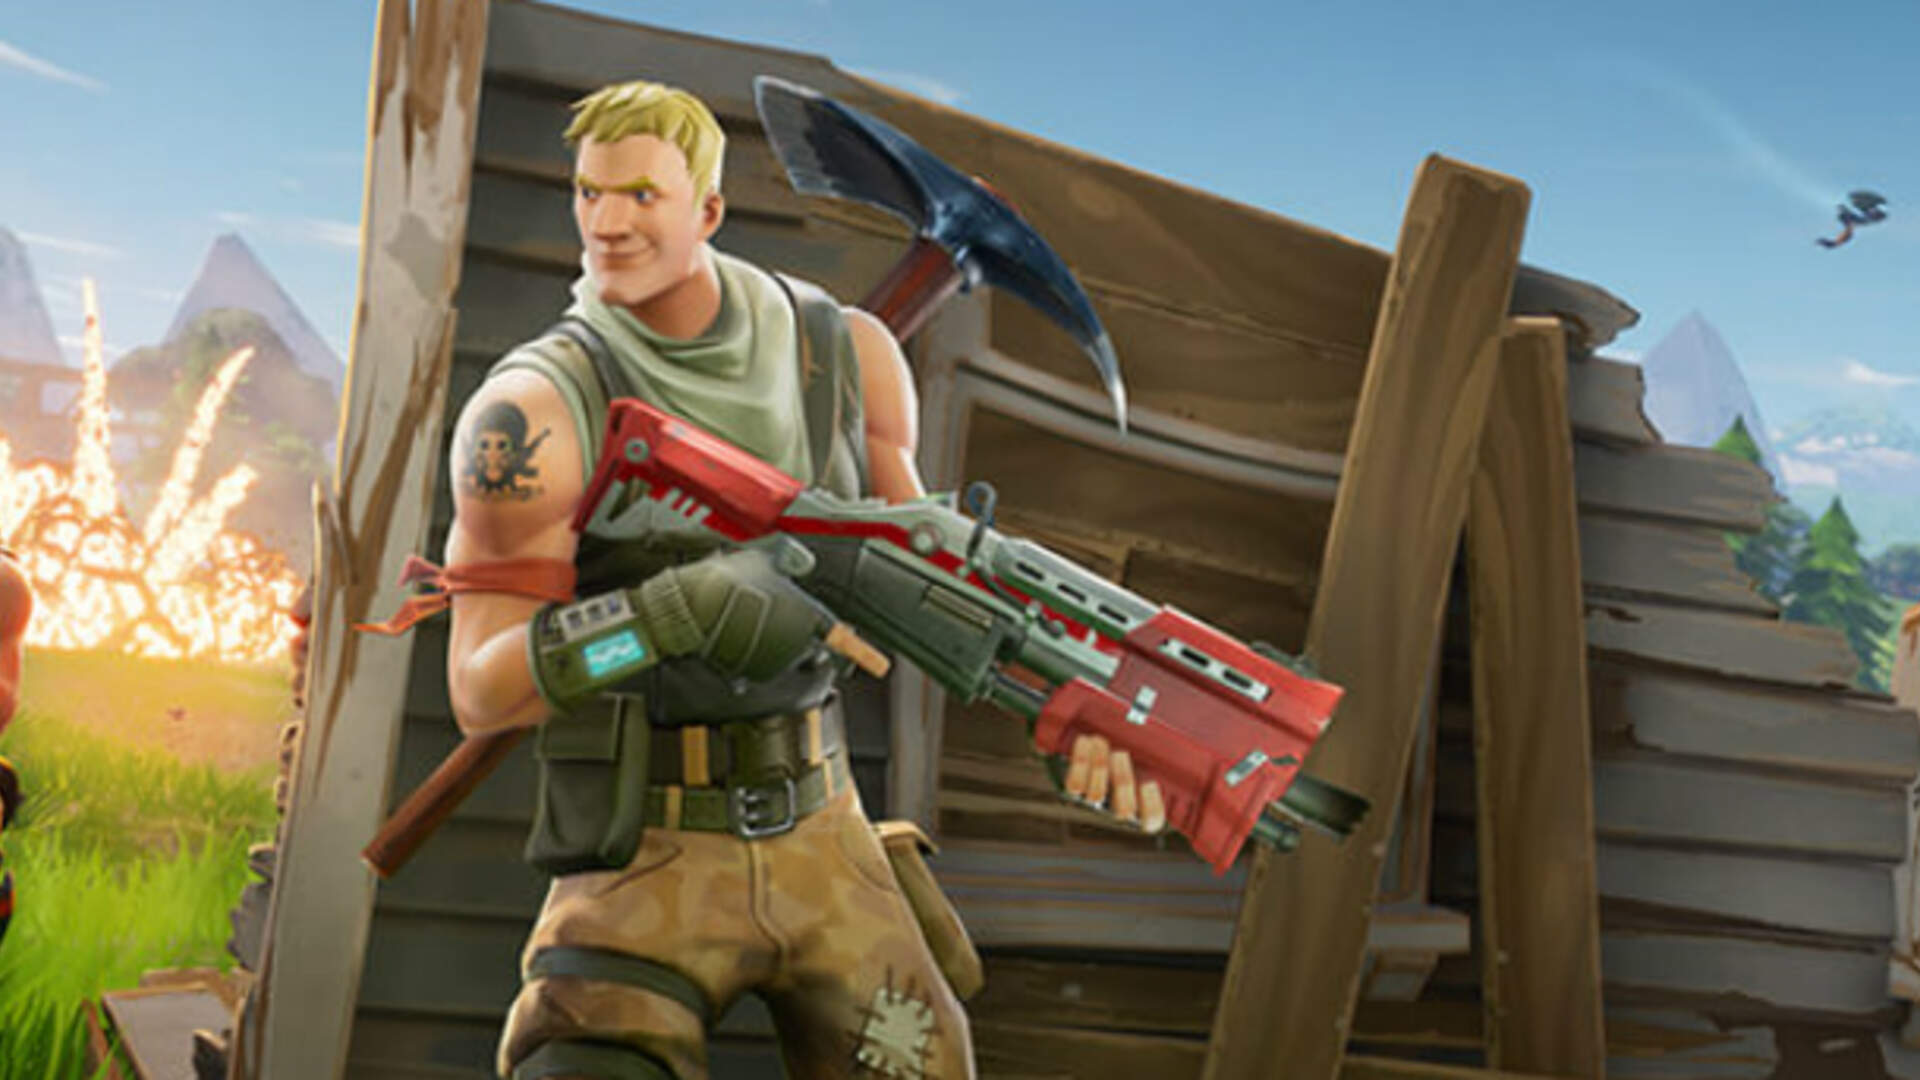 It Turns Out Epic Games is Suing a 14 Year Old for Cheating in Fortnite Battle Royale, Now His Mom is Stepping In